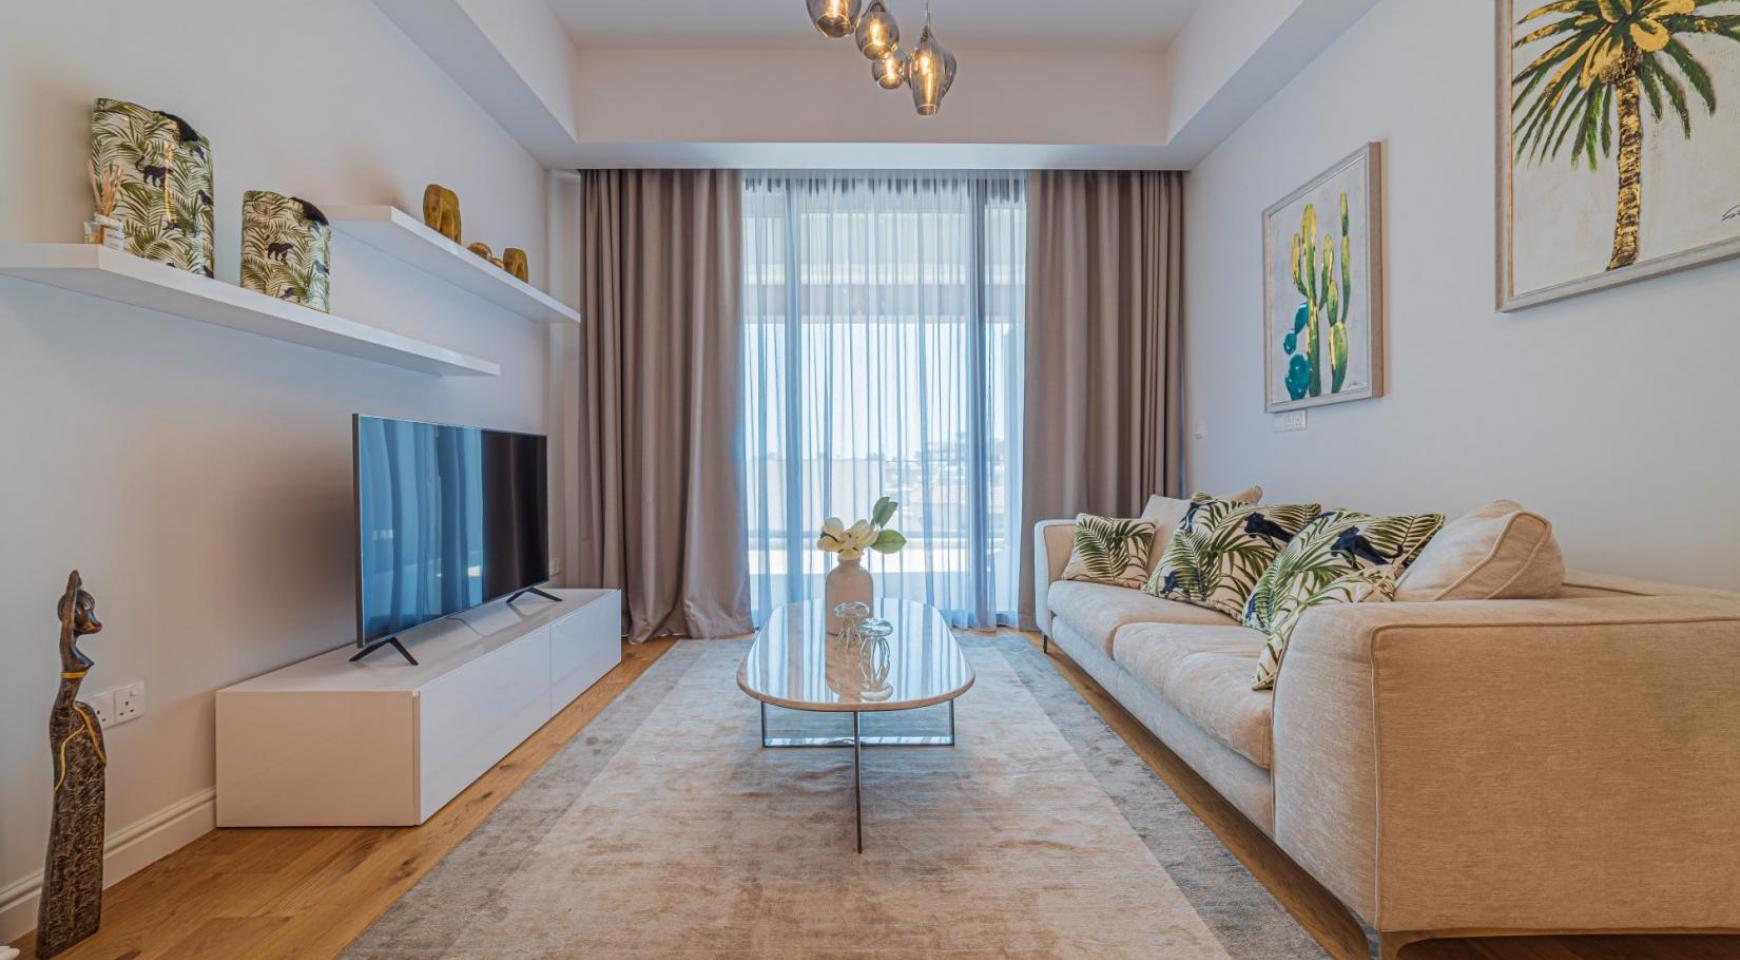 Hortensia Residence, Apt. 302. 2 Bedroom Apartment within a New Complex near the Sea  - 50